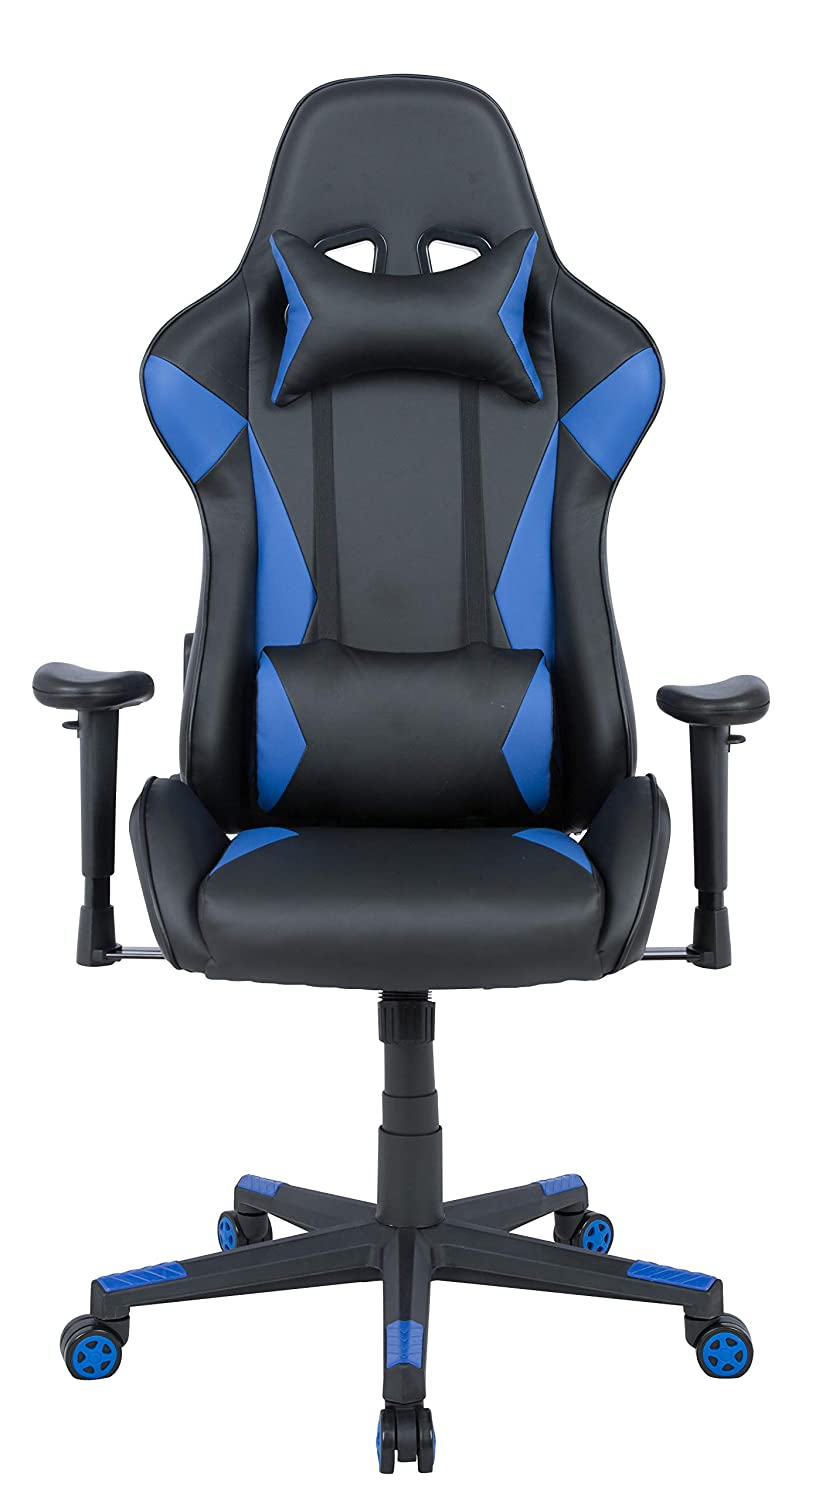 AmazonBasics Gaming Chair - Racing Style Seat with Headrest and Firm Lumbar Support, Easy Assembly - Blue